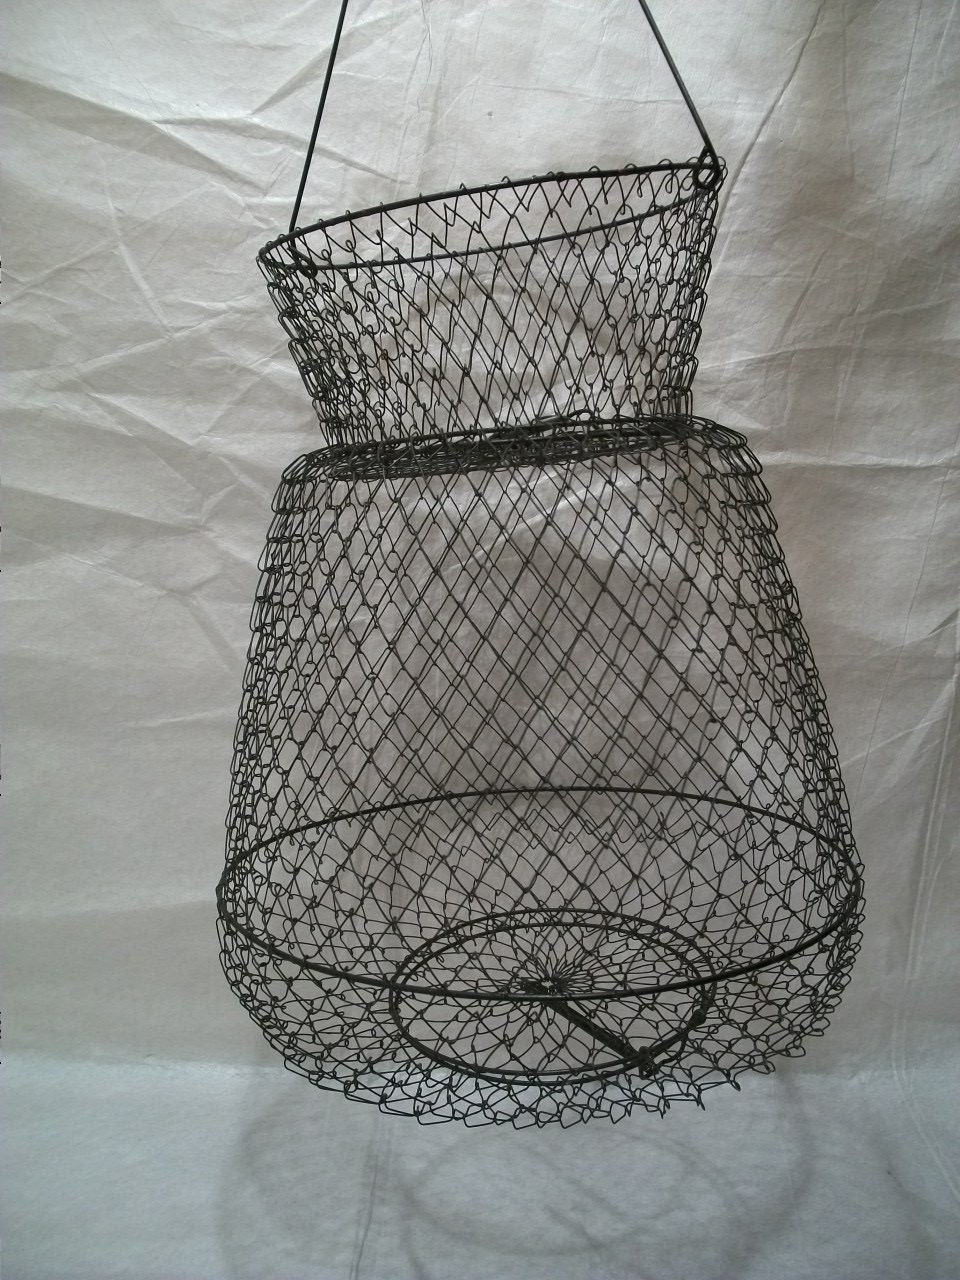 Vintage fishing basket shrimp trap wire crawfish by ginicrafts for Fish wire basket